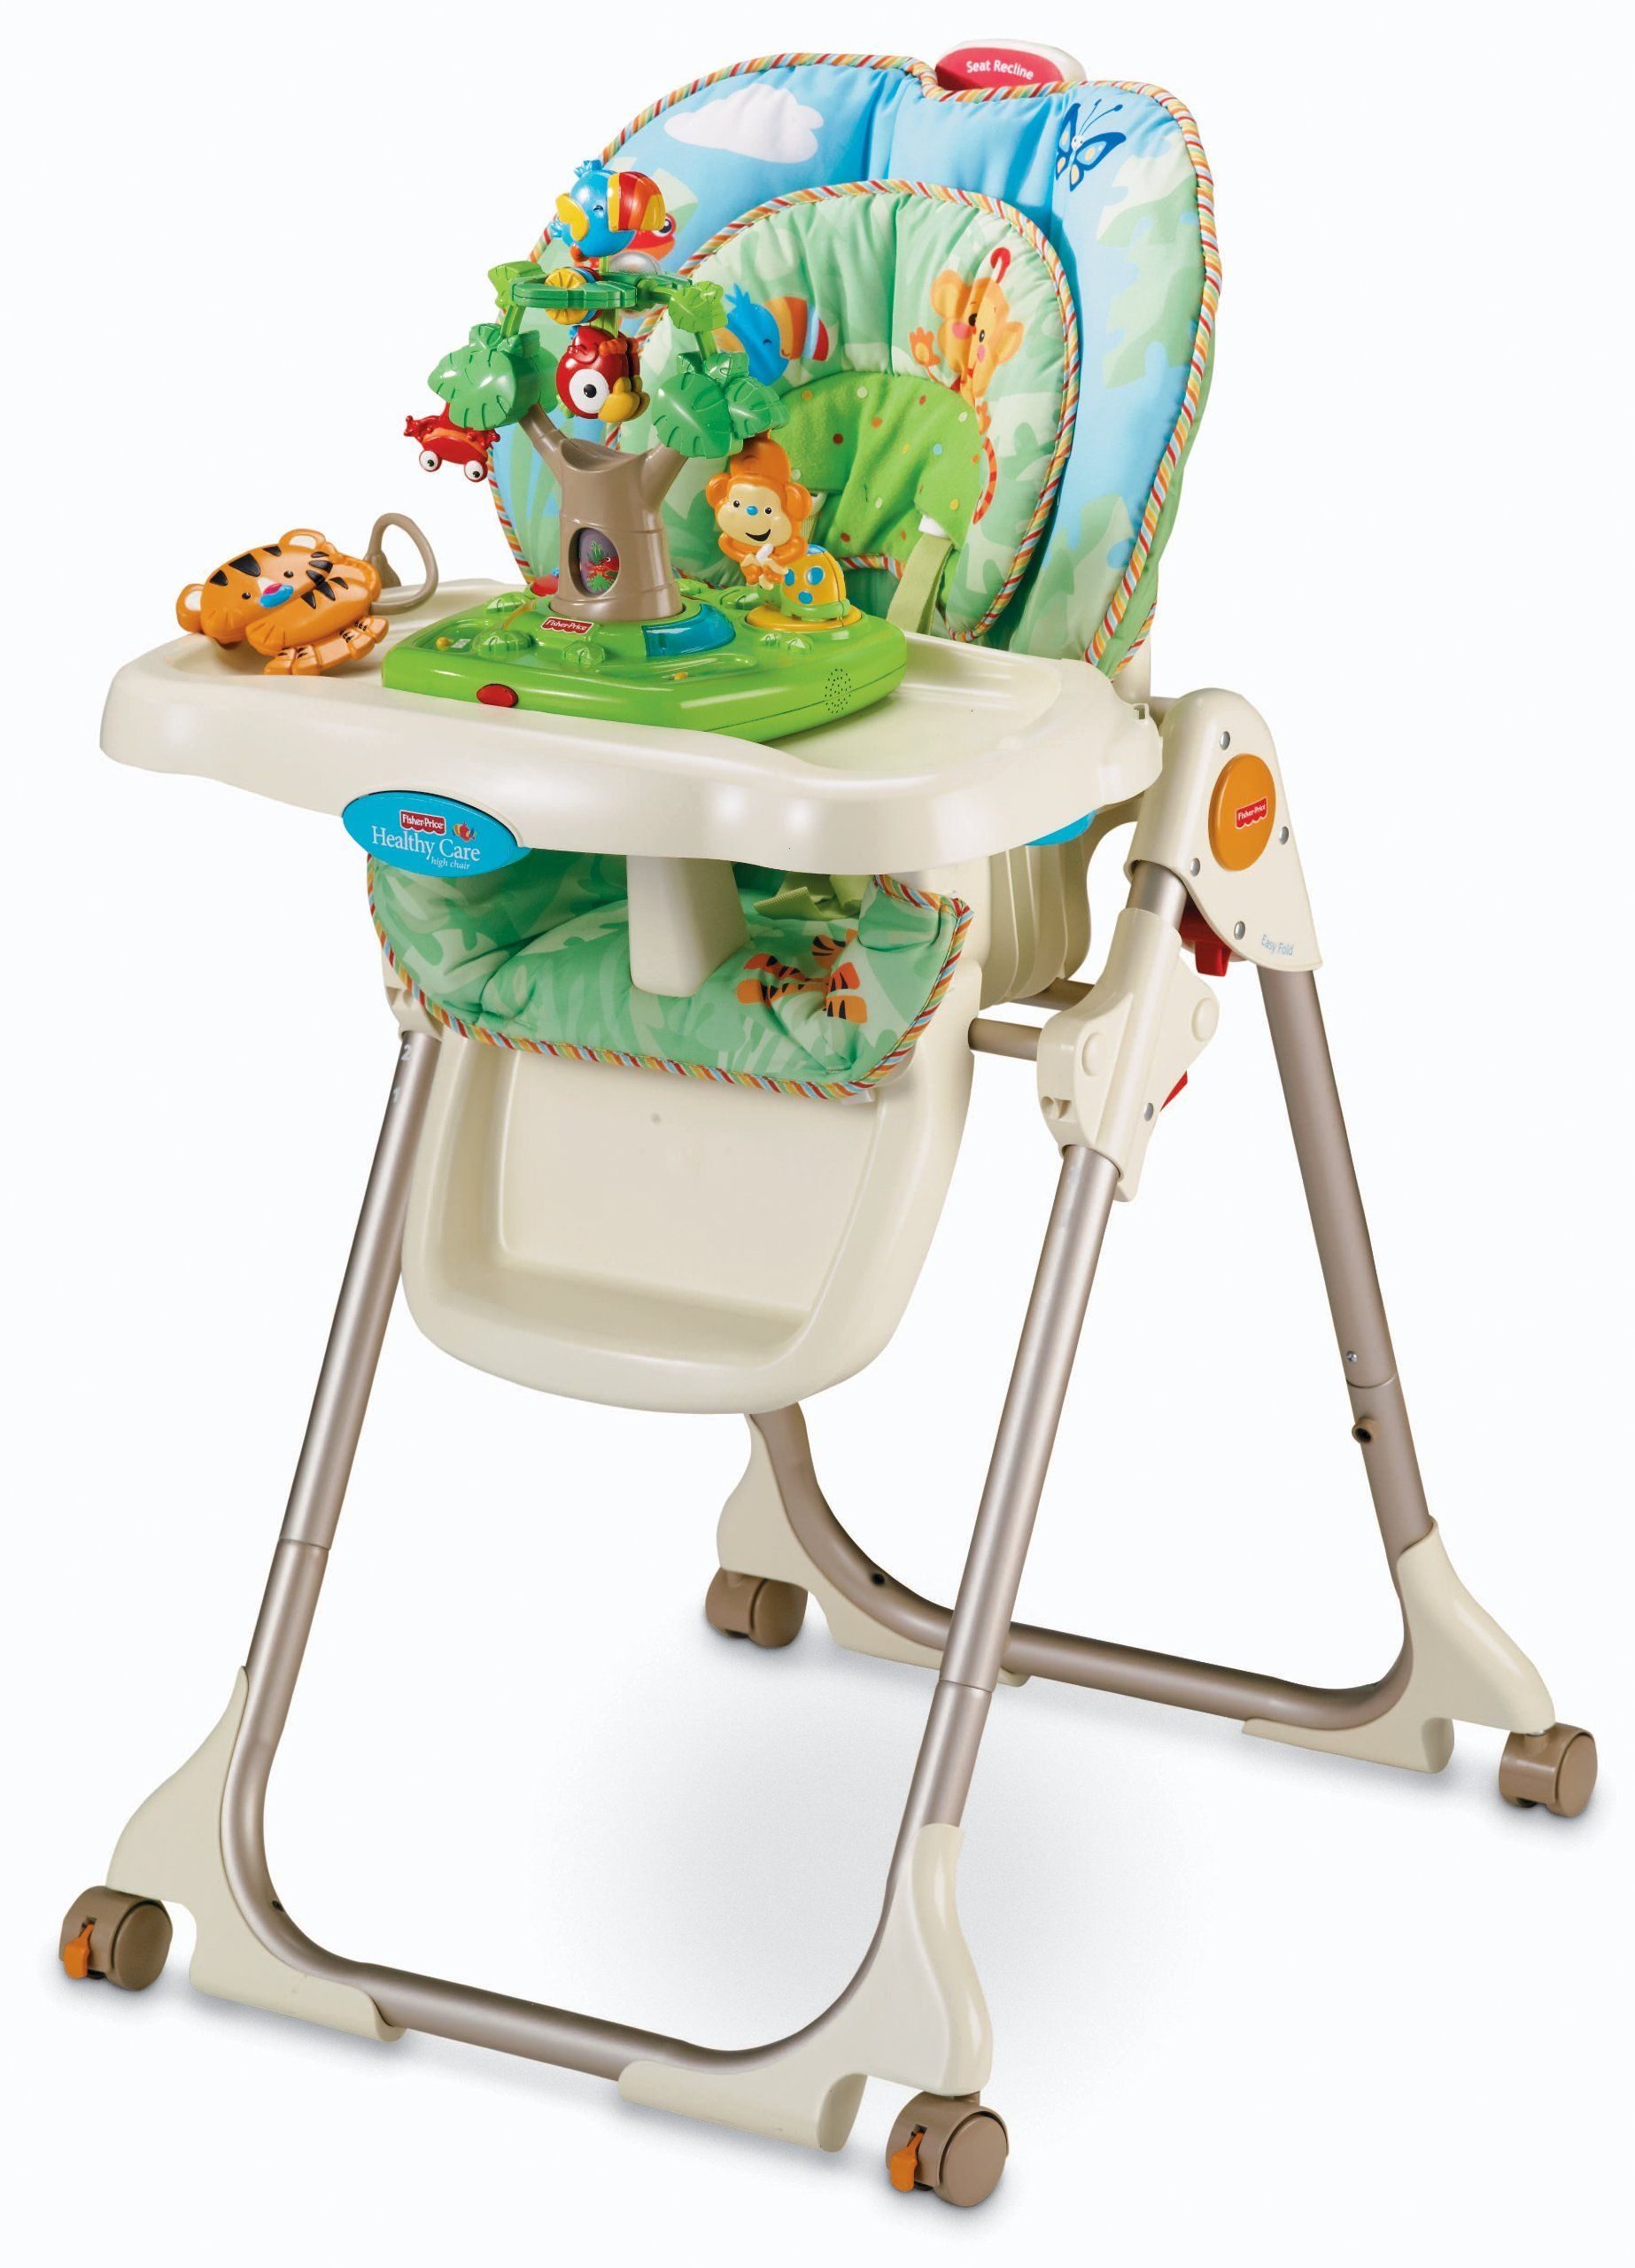 Fisher Price Rainforest Healthy Care High Chair Rainforest toy